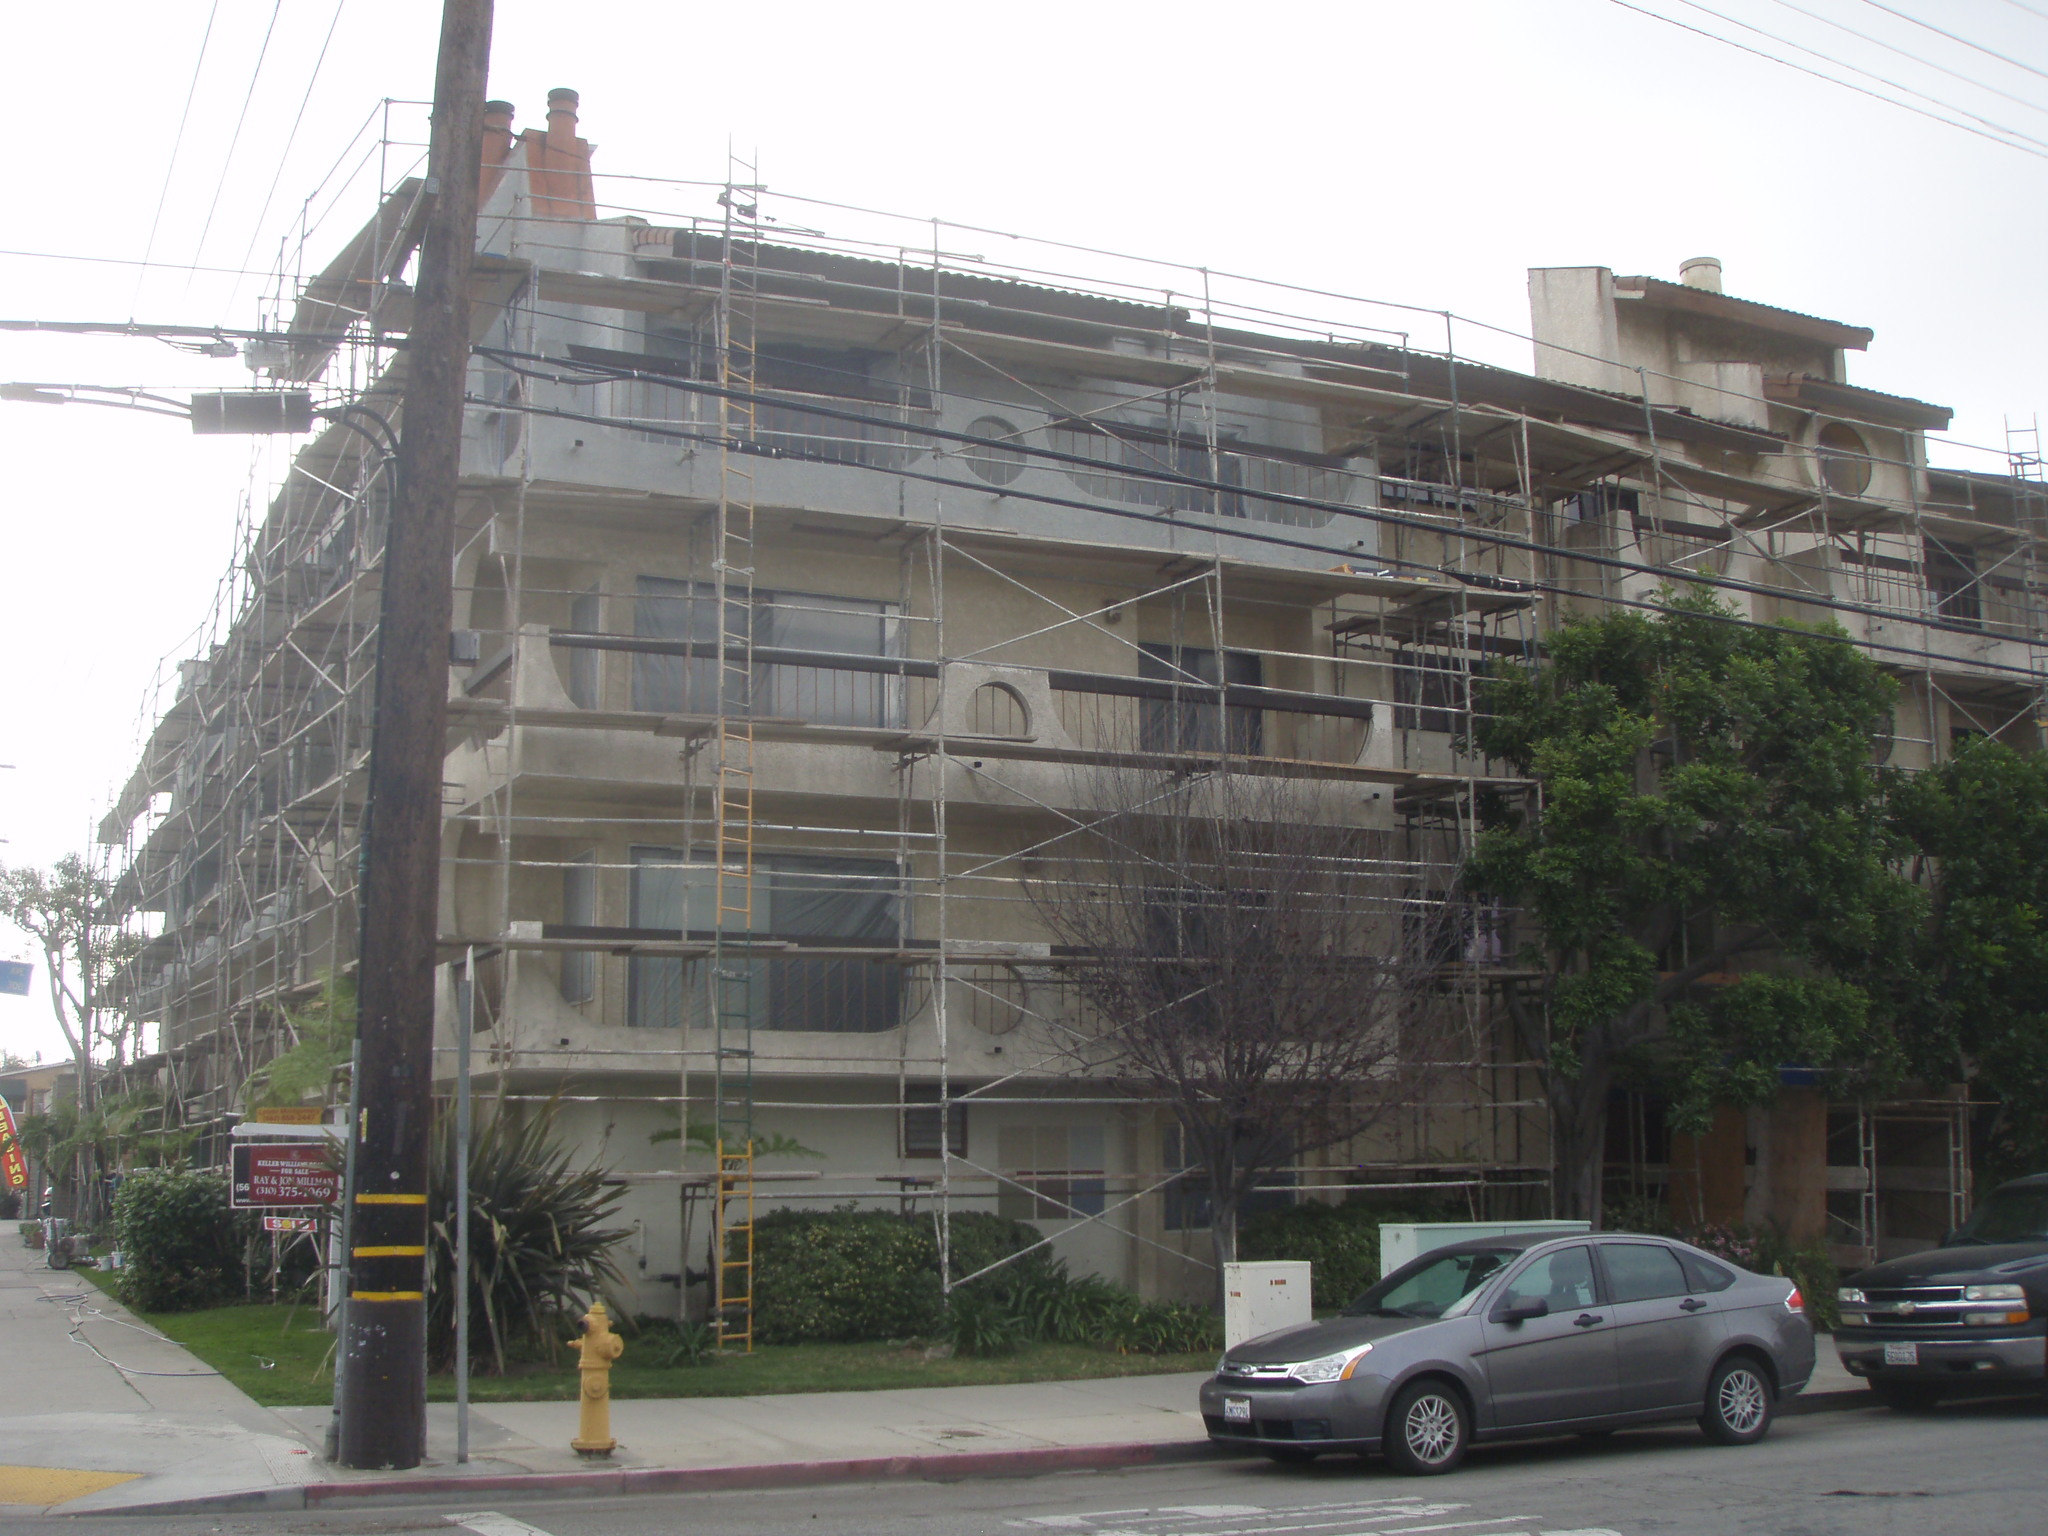 Commercial Condo painting by CertaPro painters in Irvine, CA